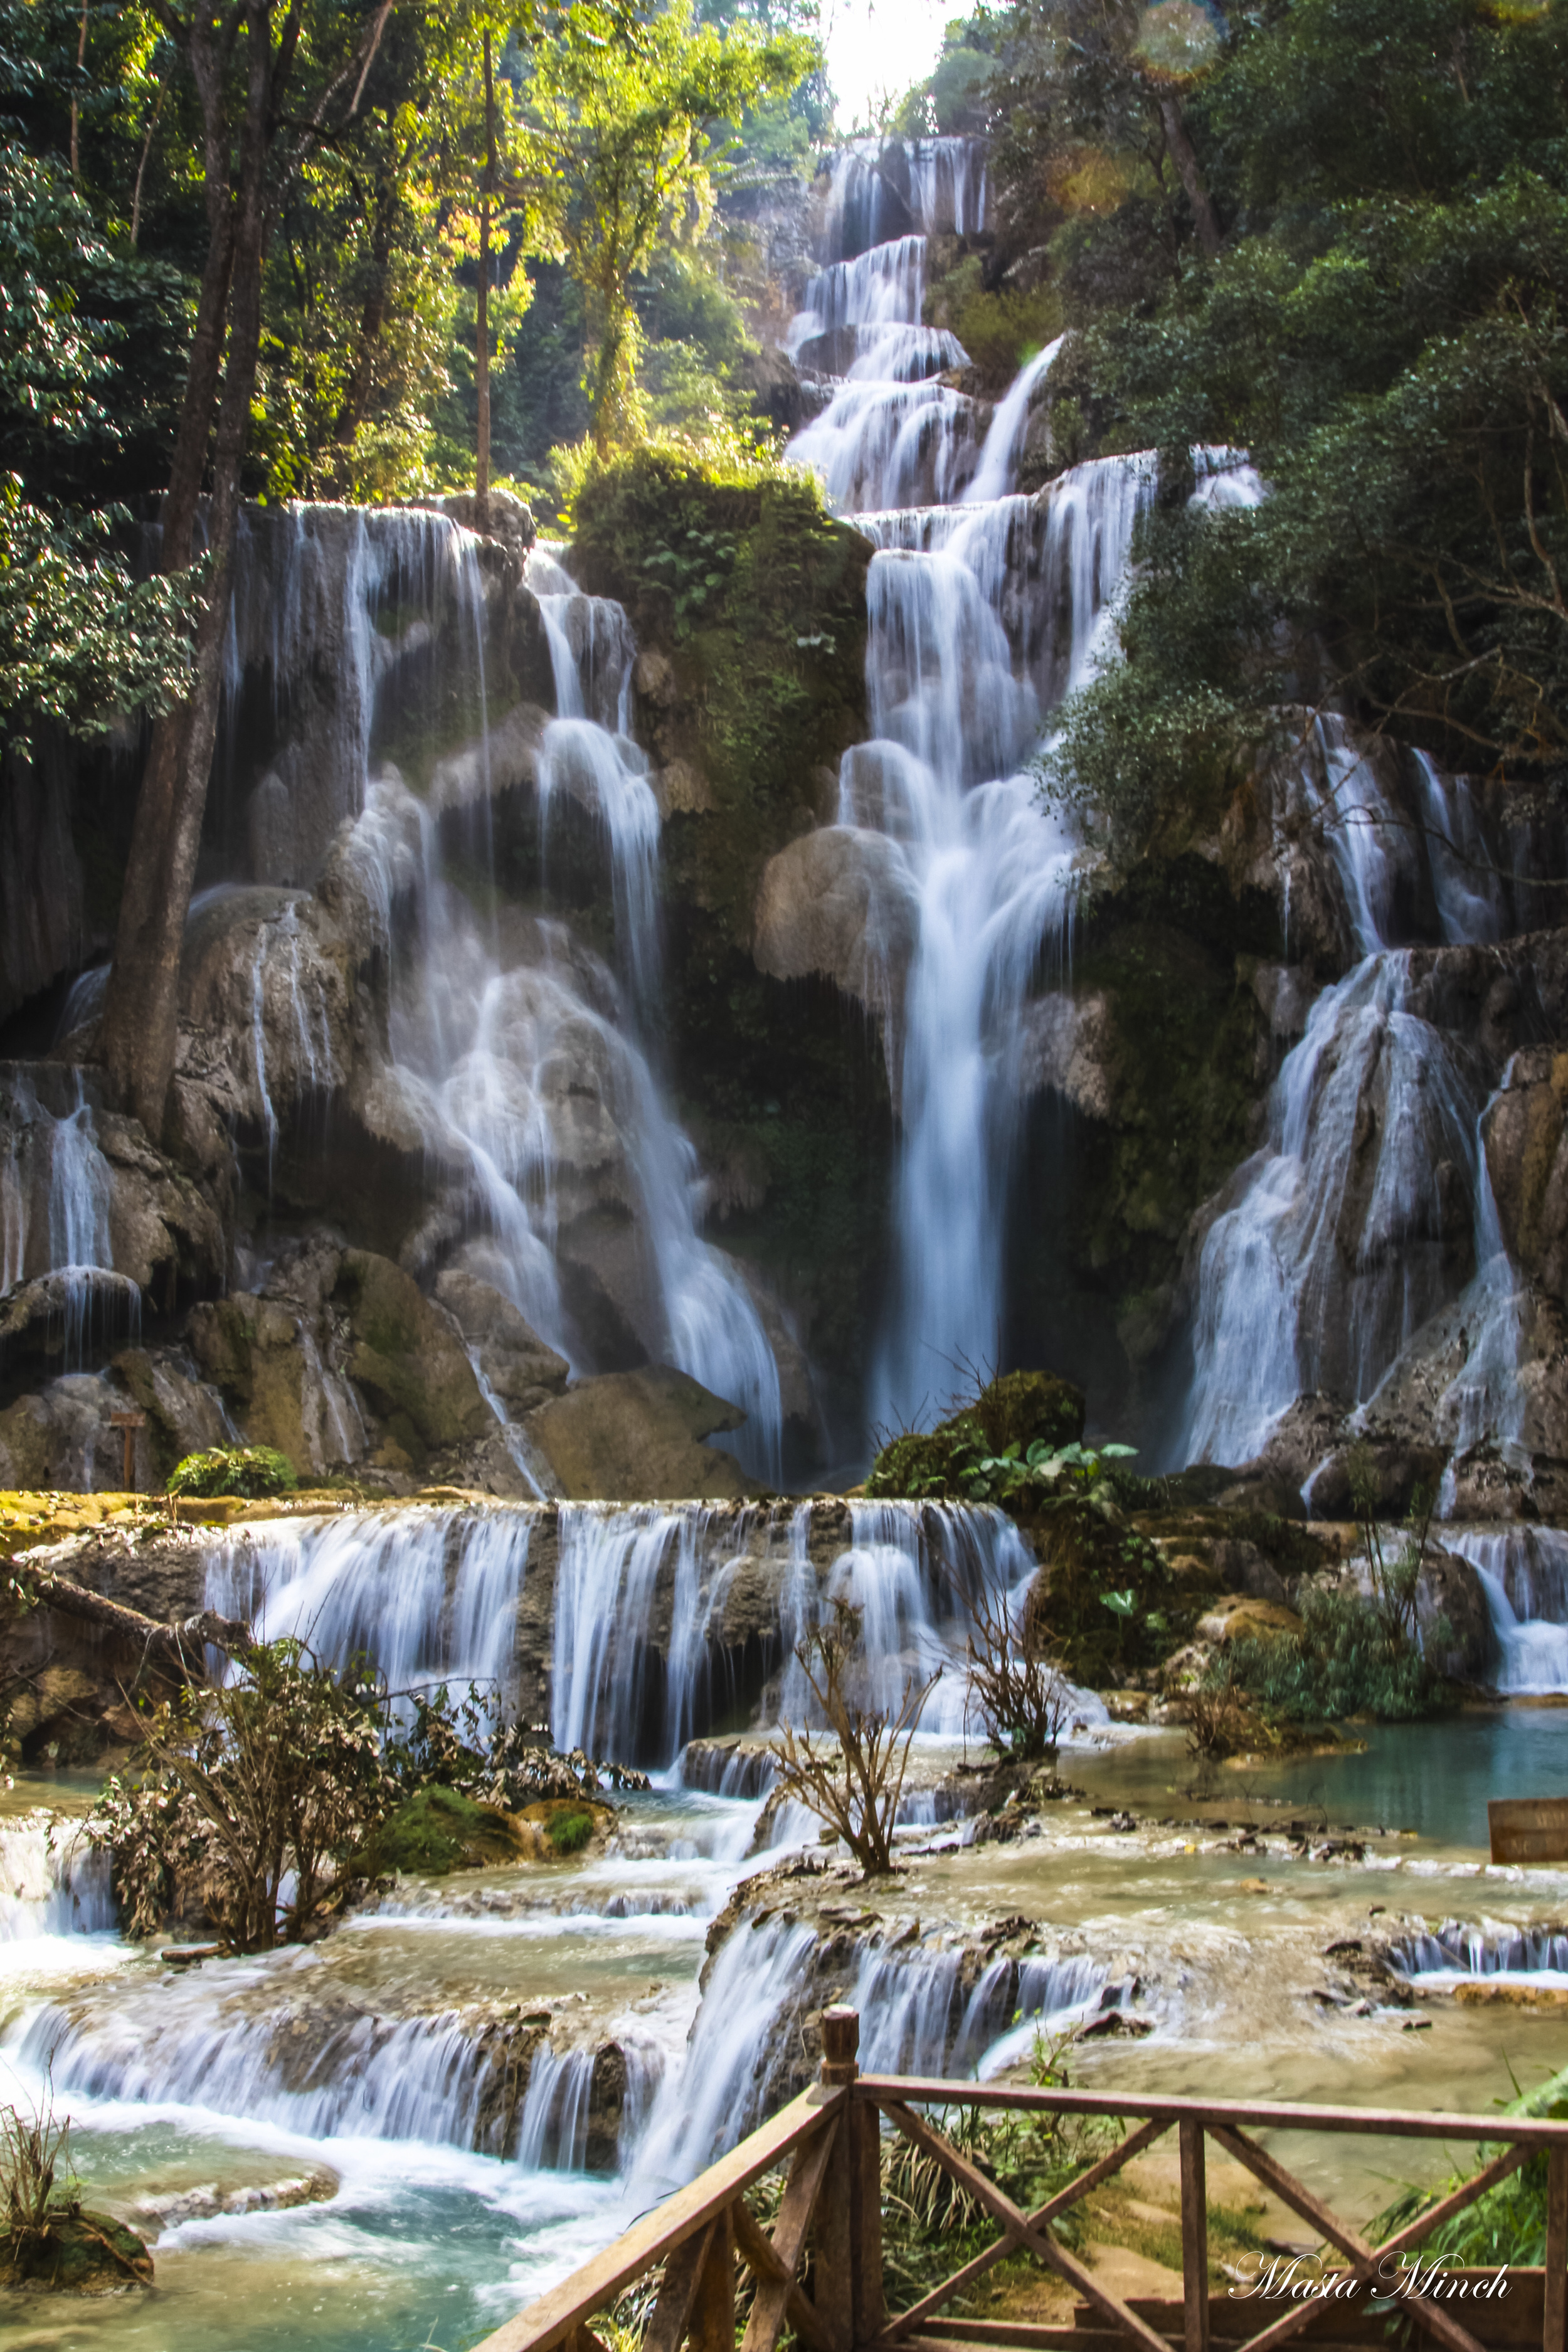 The incredible multi-tiered Kuang Si Waterfalls